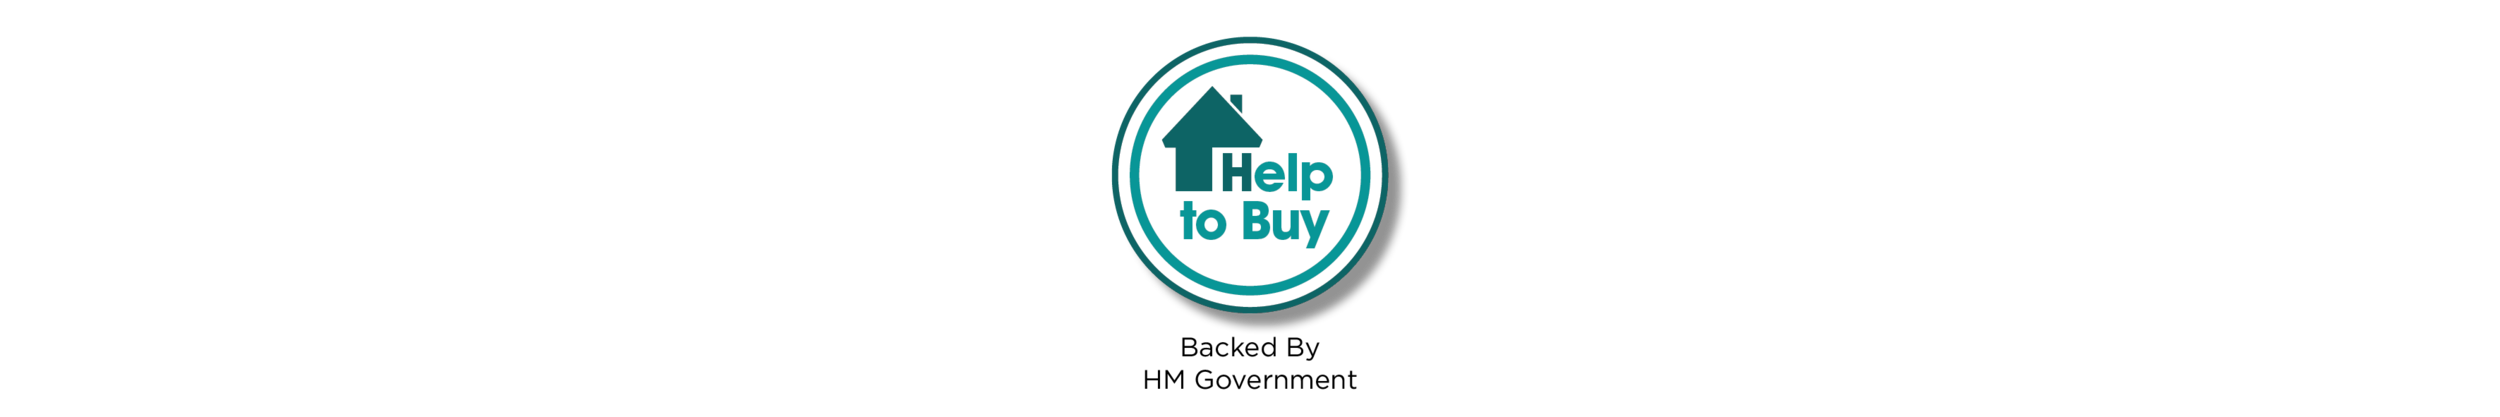 help_to_buy.png